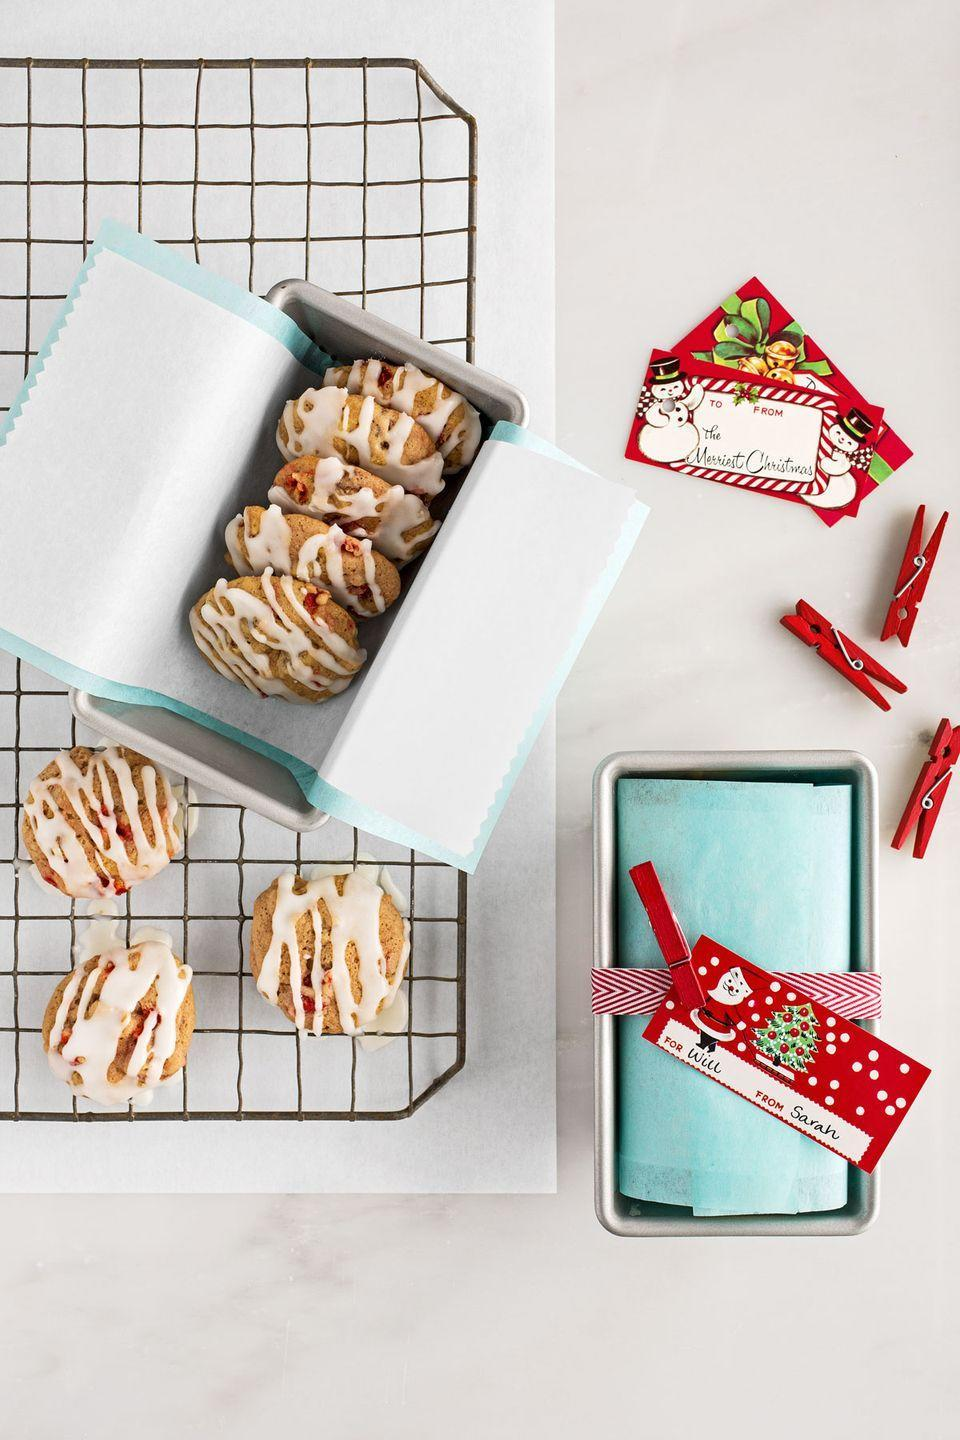 "<p>Line a mini loaf pan, with plain tissue paper then wax paper. Add cookies, fold over paper, then wrap with ribbon and attach a card with a mini clothespin.</p><p><a href=""https://www.countryliving.com/food-drinks/recipes/a36899/fruitcake-cookies/"" rel=""nofollow noopener"" target=""_blank"" data-ylk=""slk:Get the recipe."" class=""link rapid-noclick-resp""><strong>Get the recipe.</strong></a></p><p><a class=""link rapid-noclick-resp"" href=""https://www.amazon.com/Wilton-2105-3972-Perfect-Results-8-Cavity/dp/B00FL62D1C?tag=syn-yahoo-20&ascsubtag=%5Bartid%7C10050.g.647%5Bsrc%7Cyahoo-us"" rel=""nofollow noopener"" target=""_blank"" data-ylk=""slk:SHOP MINI LOAF PANS"">SHOP MINI LOAF PANS</a></p>"